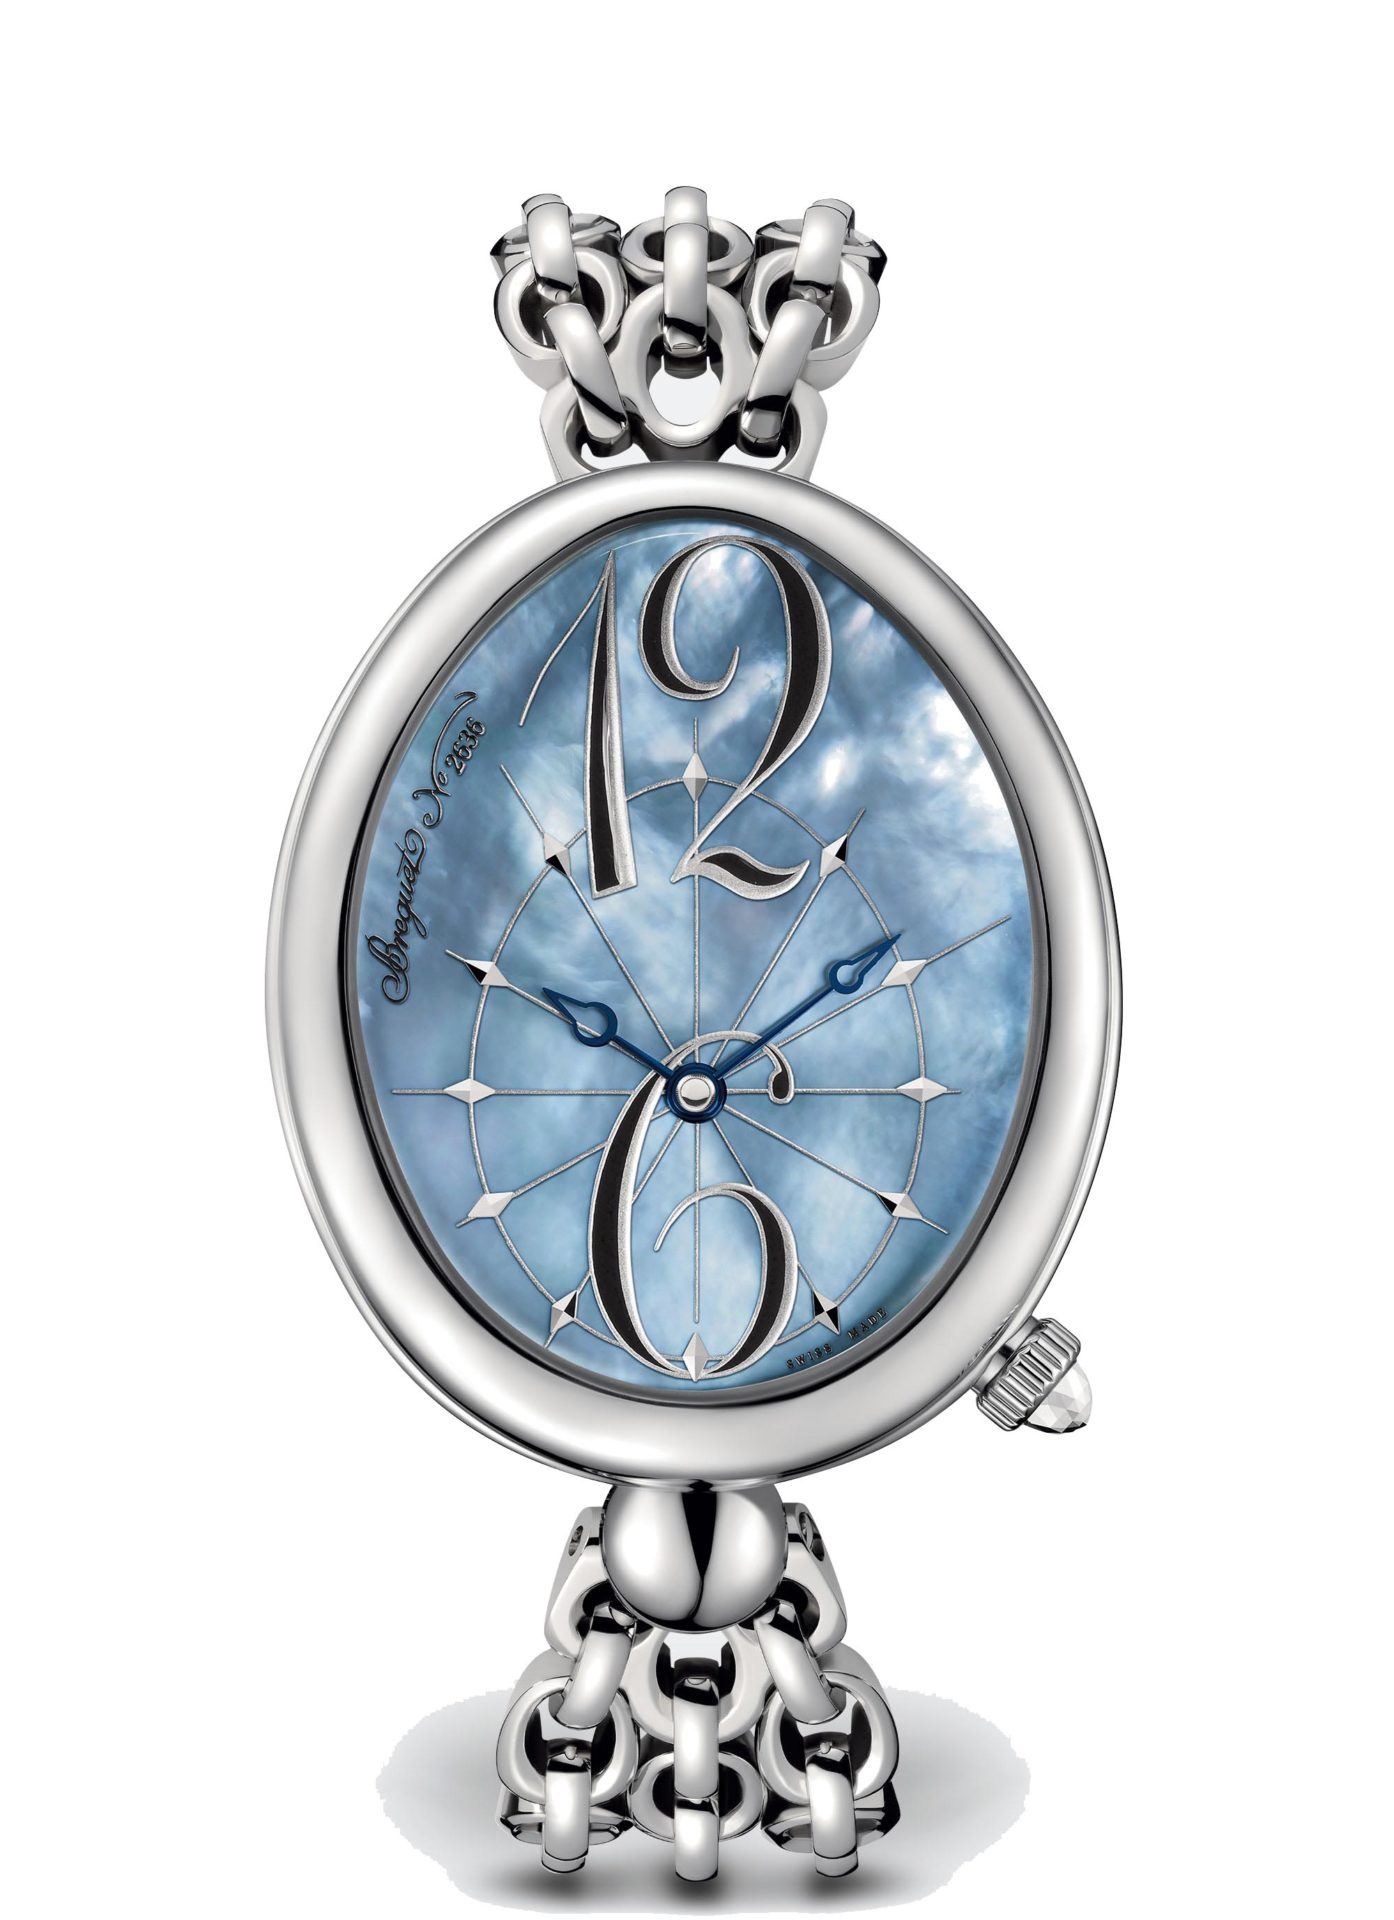 Breguet-Reine-de-Naples-8967-Hall-of-Time-8967st-v8-j50